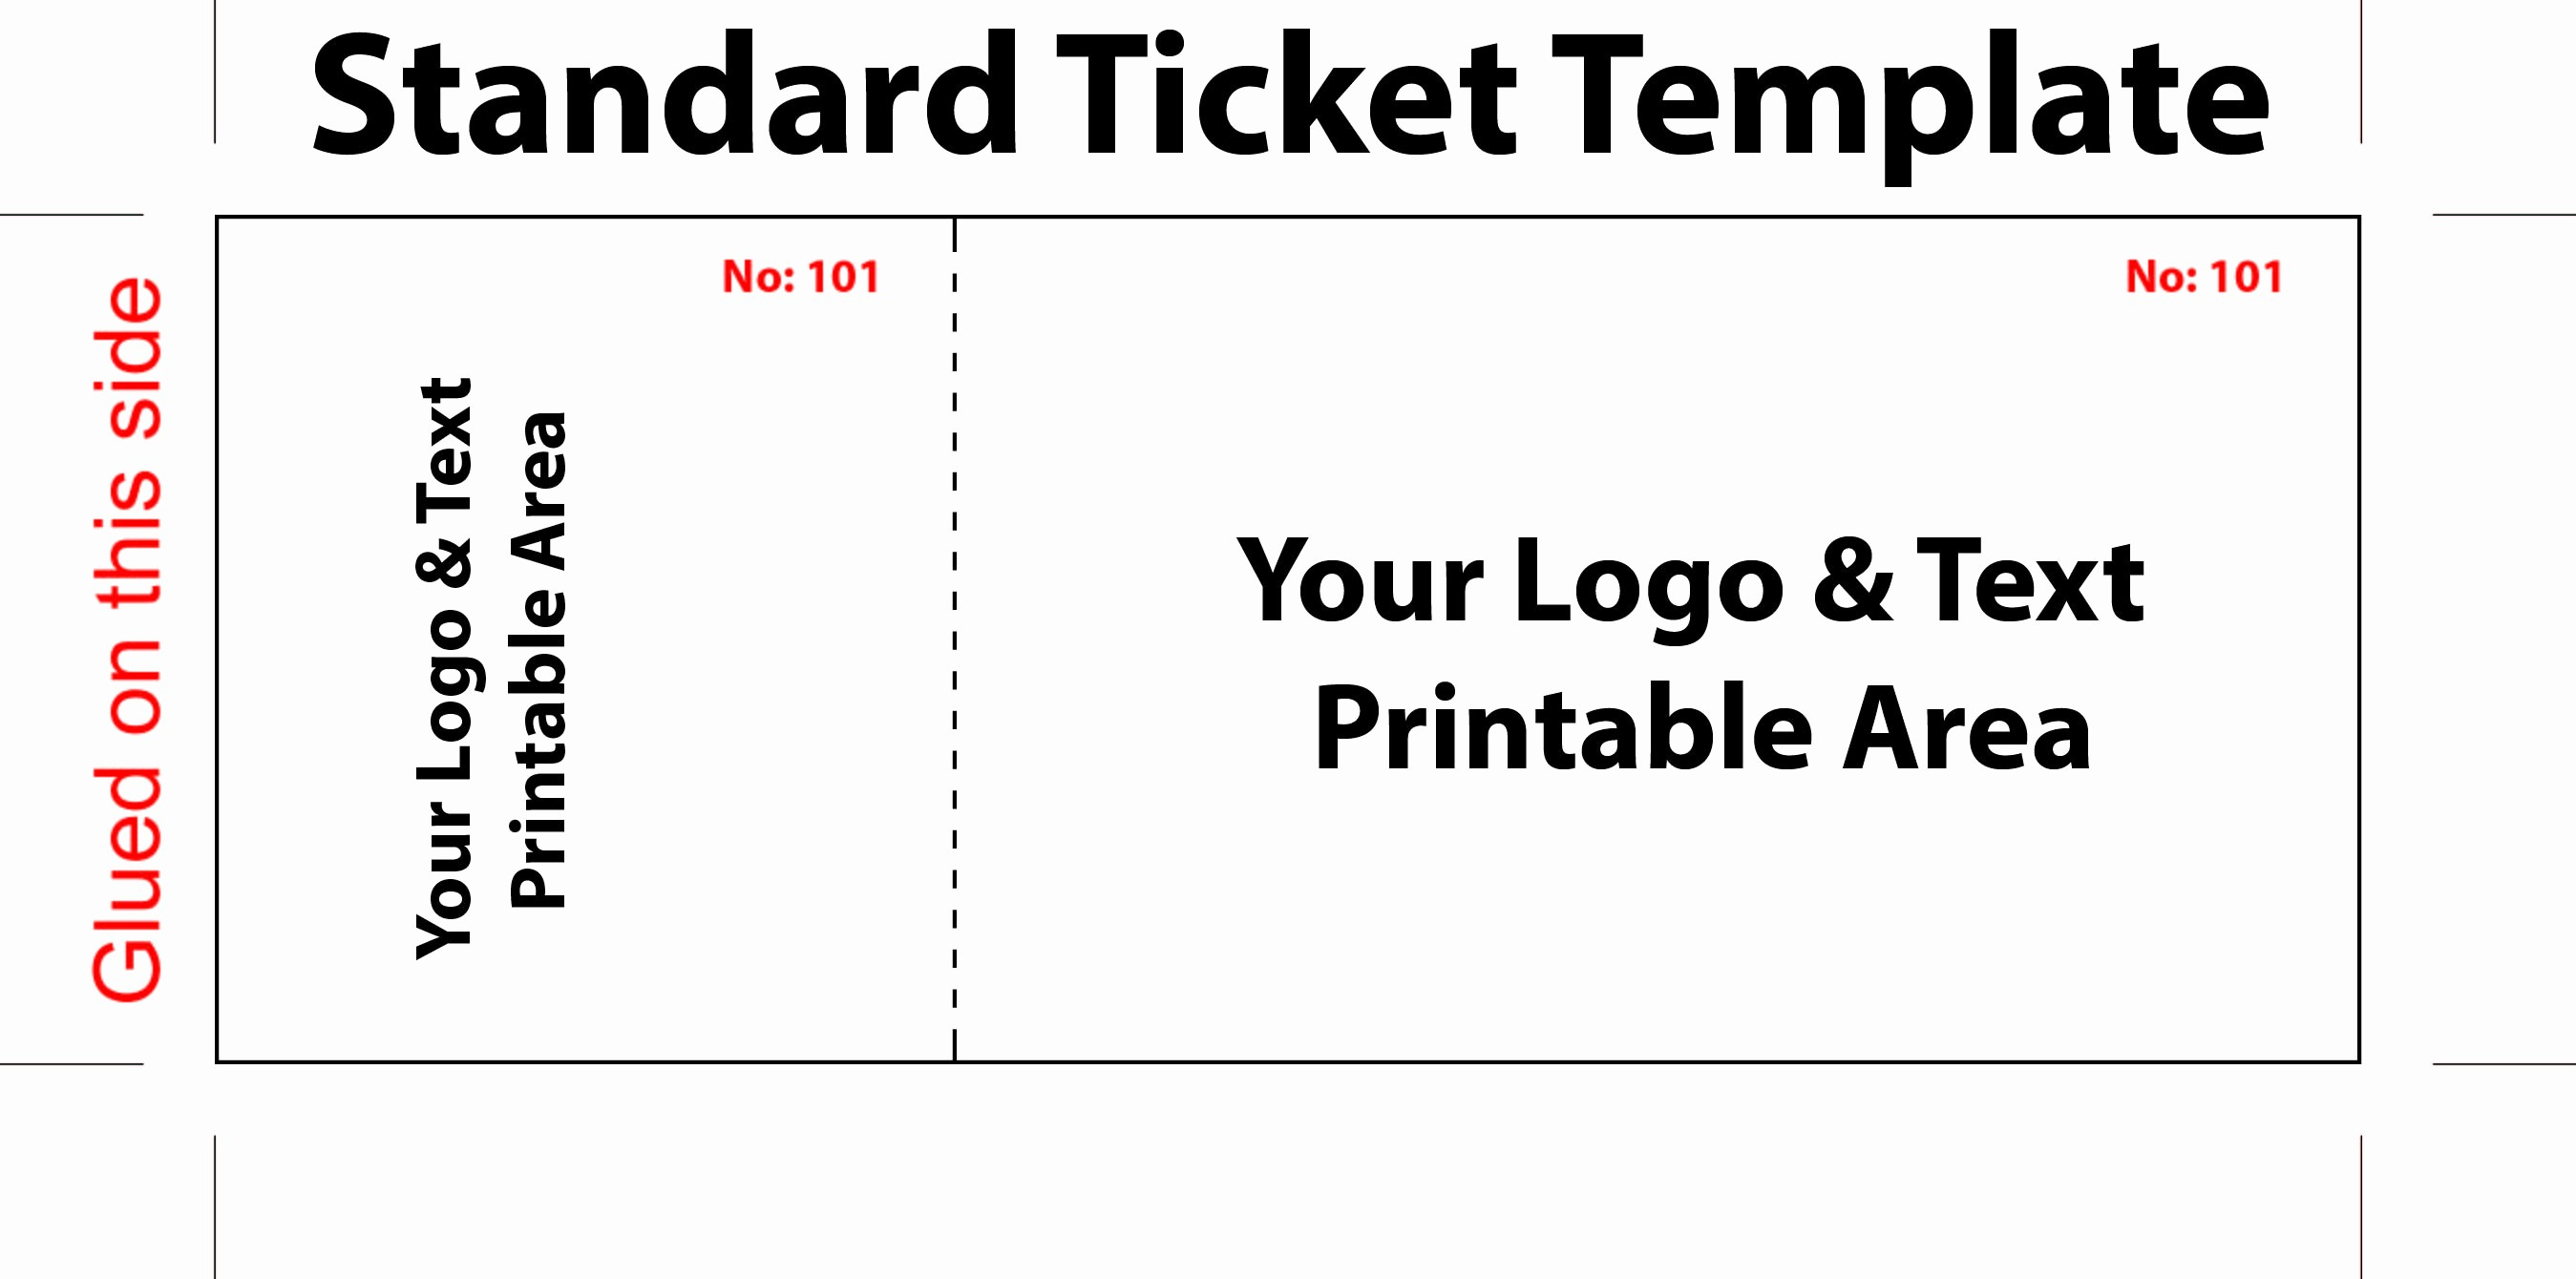 free editable standard ticket template example for concert with logo and text area in white background